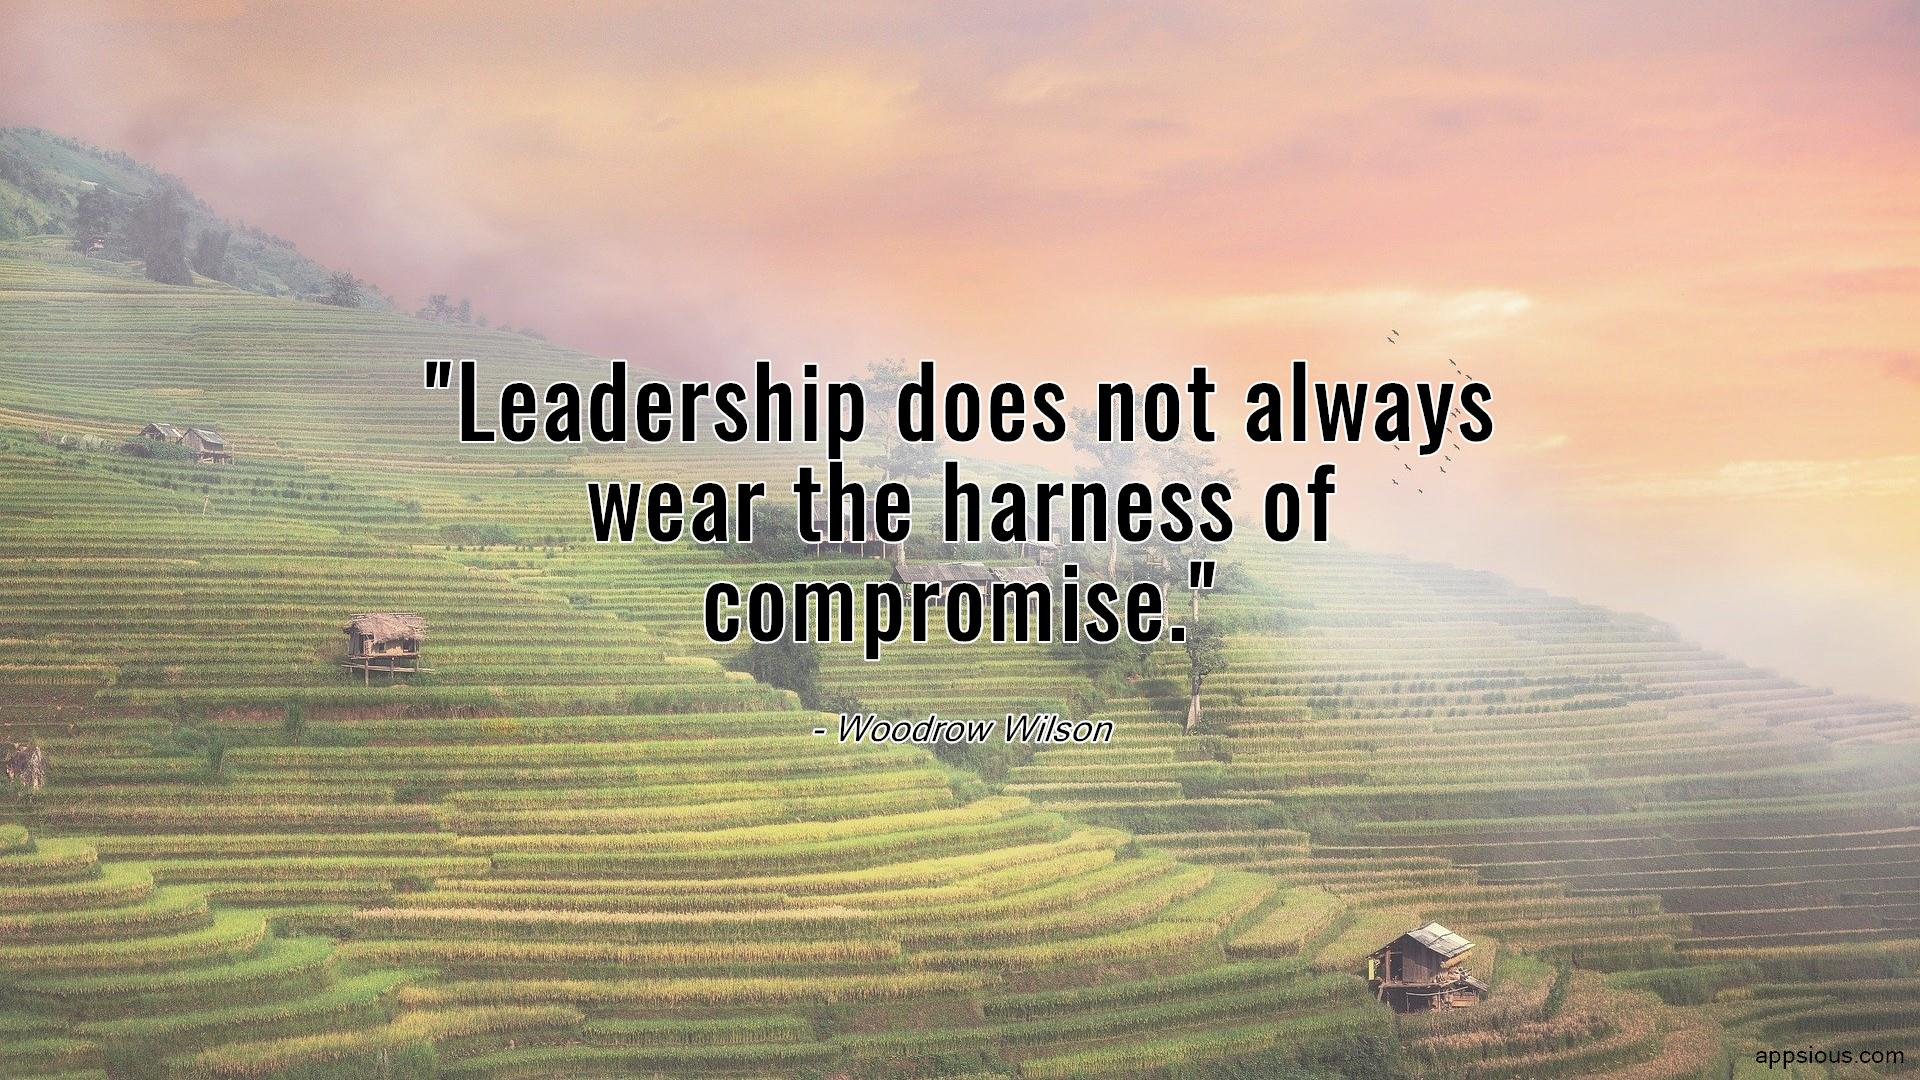 Leadership does not always wear the harness of compromise.